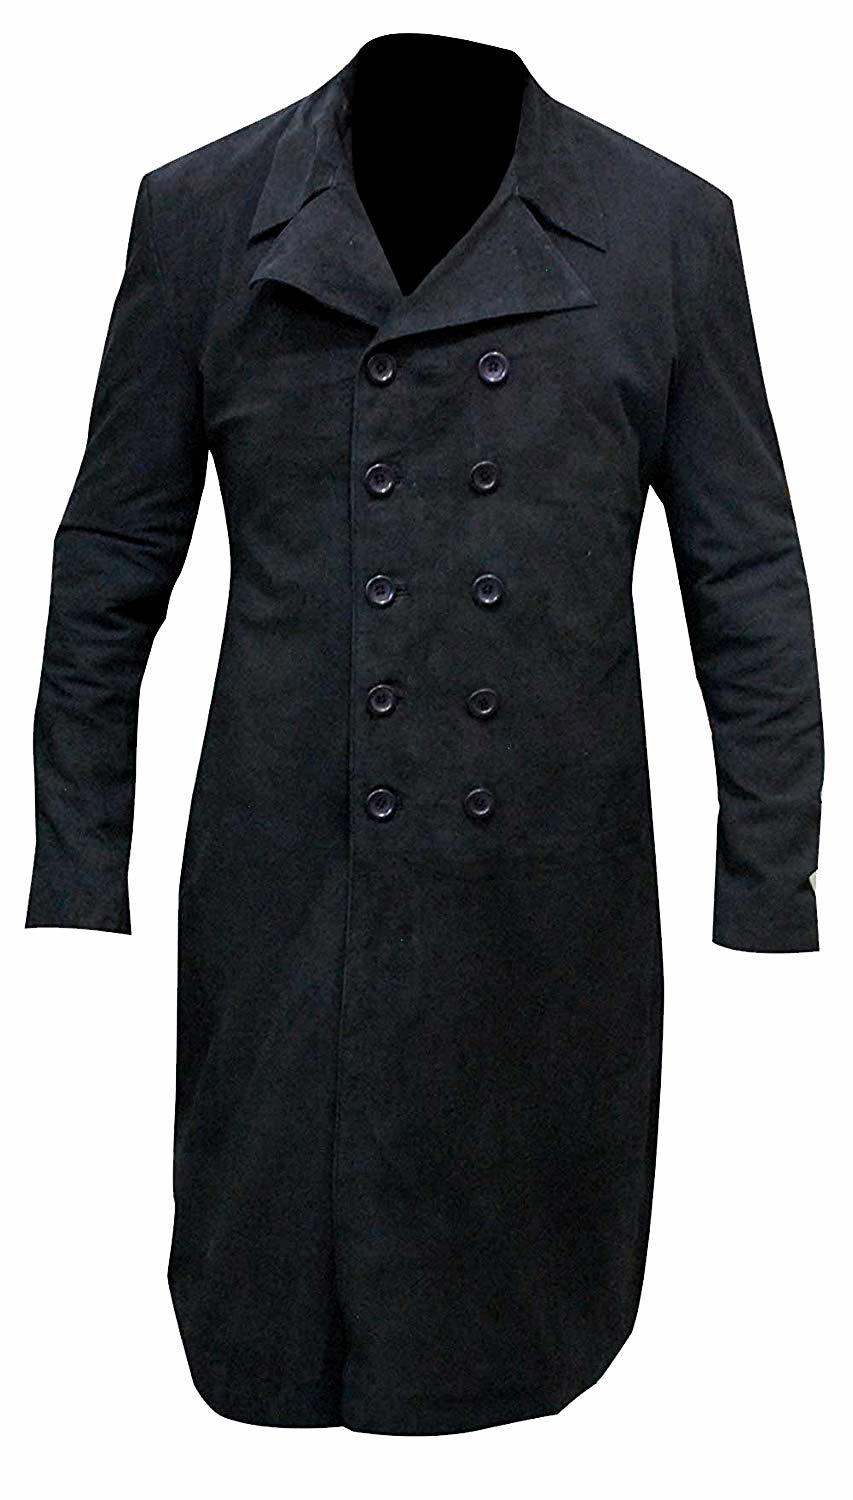 Tom hiddleston crimson peak cotton black coat